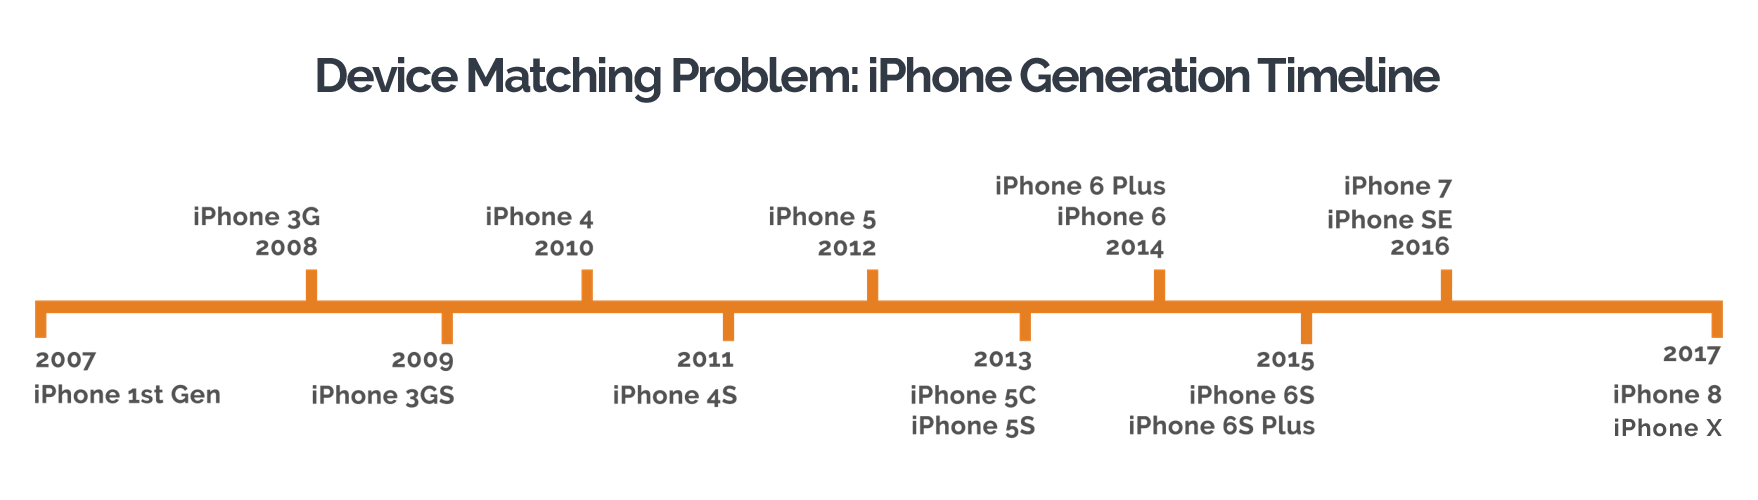 wireless-network-design-challenges-Device-matching-problem-iPhone-Generation-Timeline.png